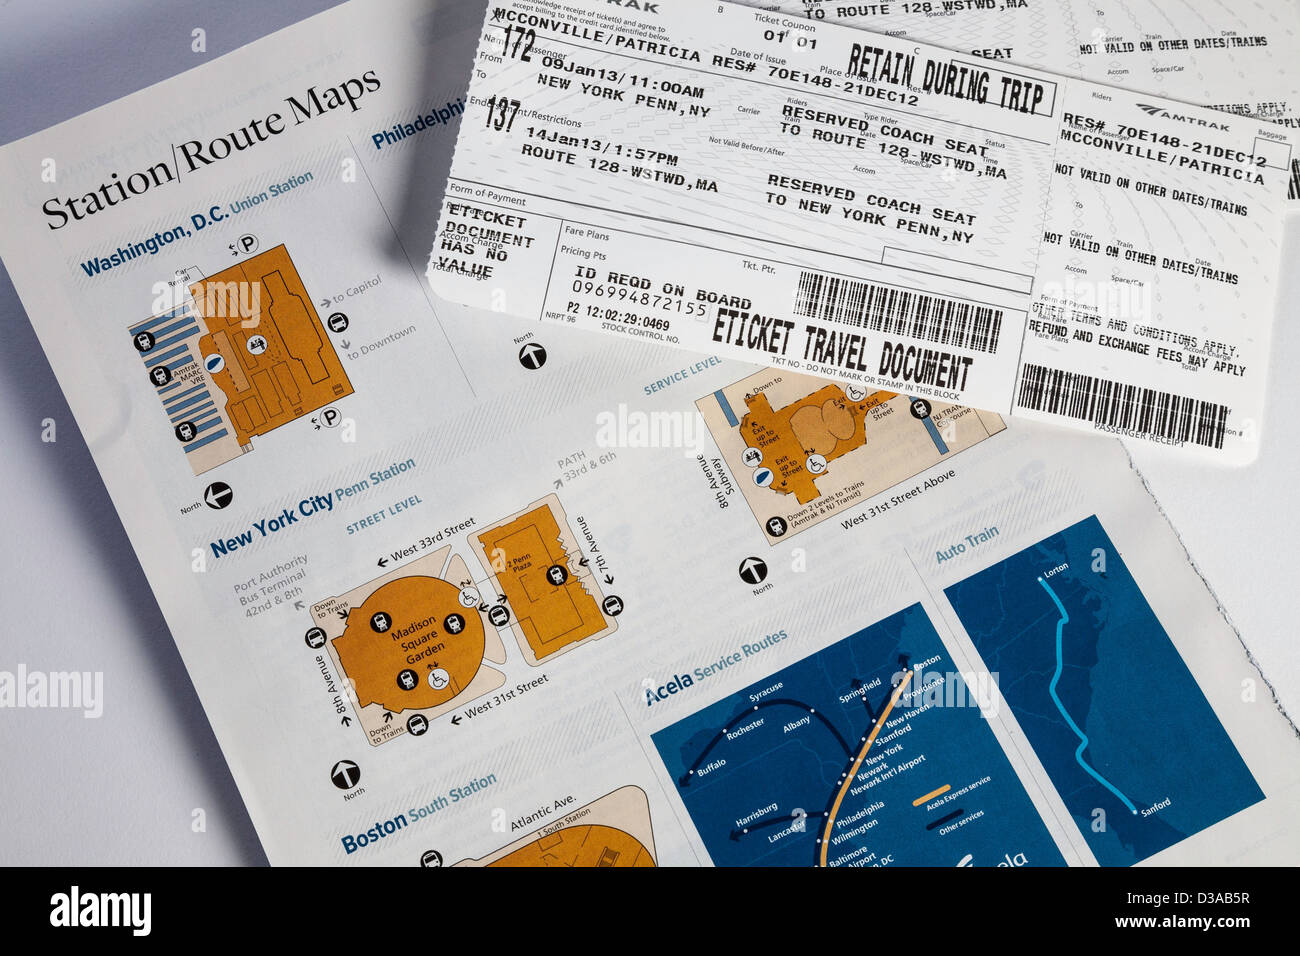 Amtrak Train Tickets and Route Maps, USA Stock Photo ...